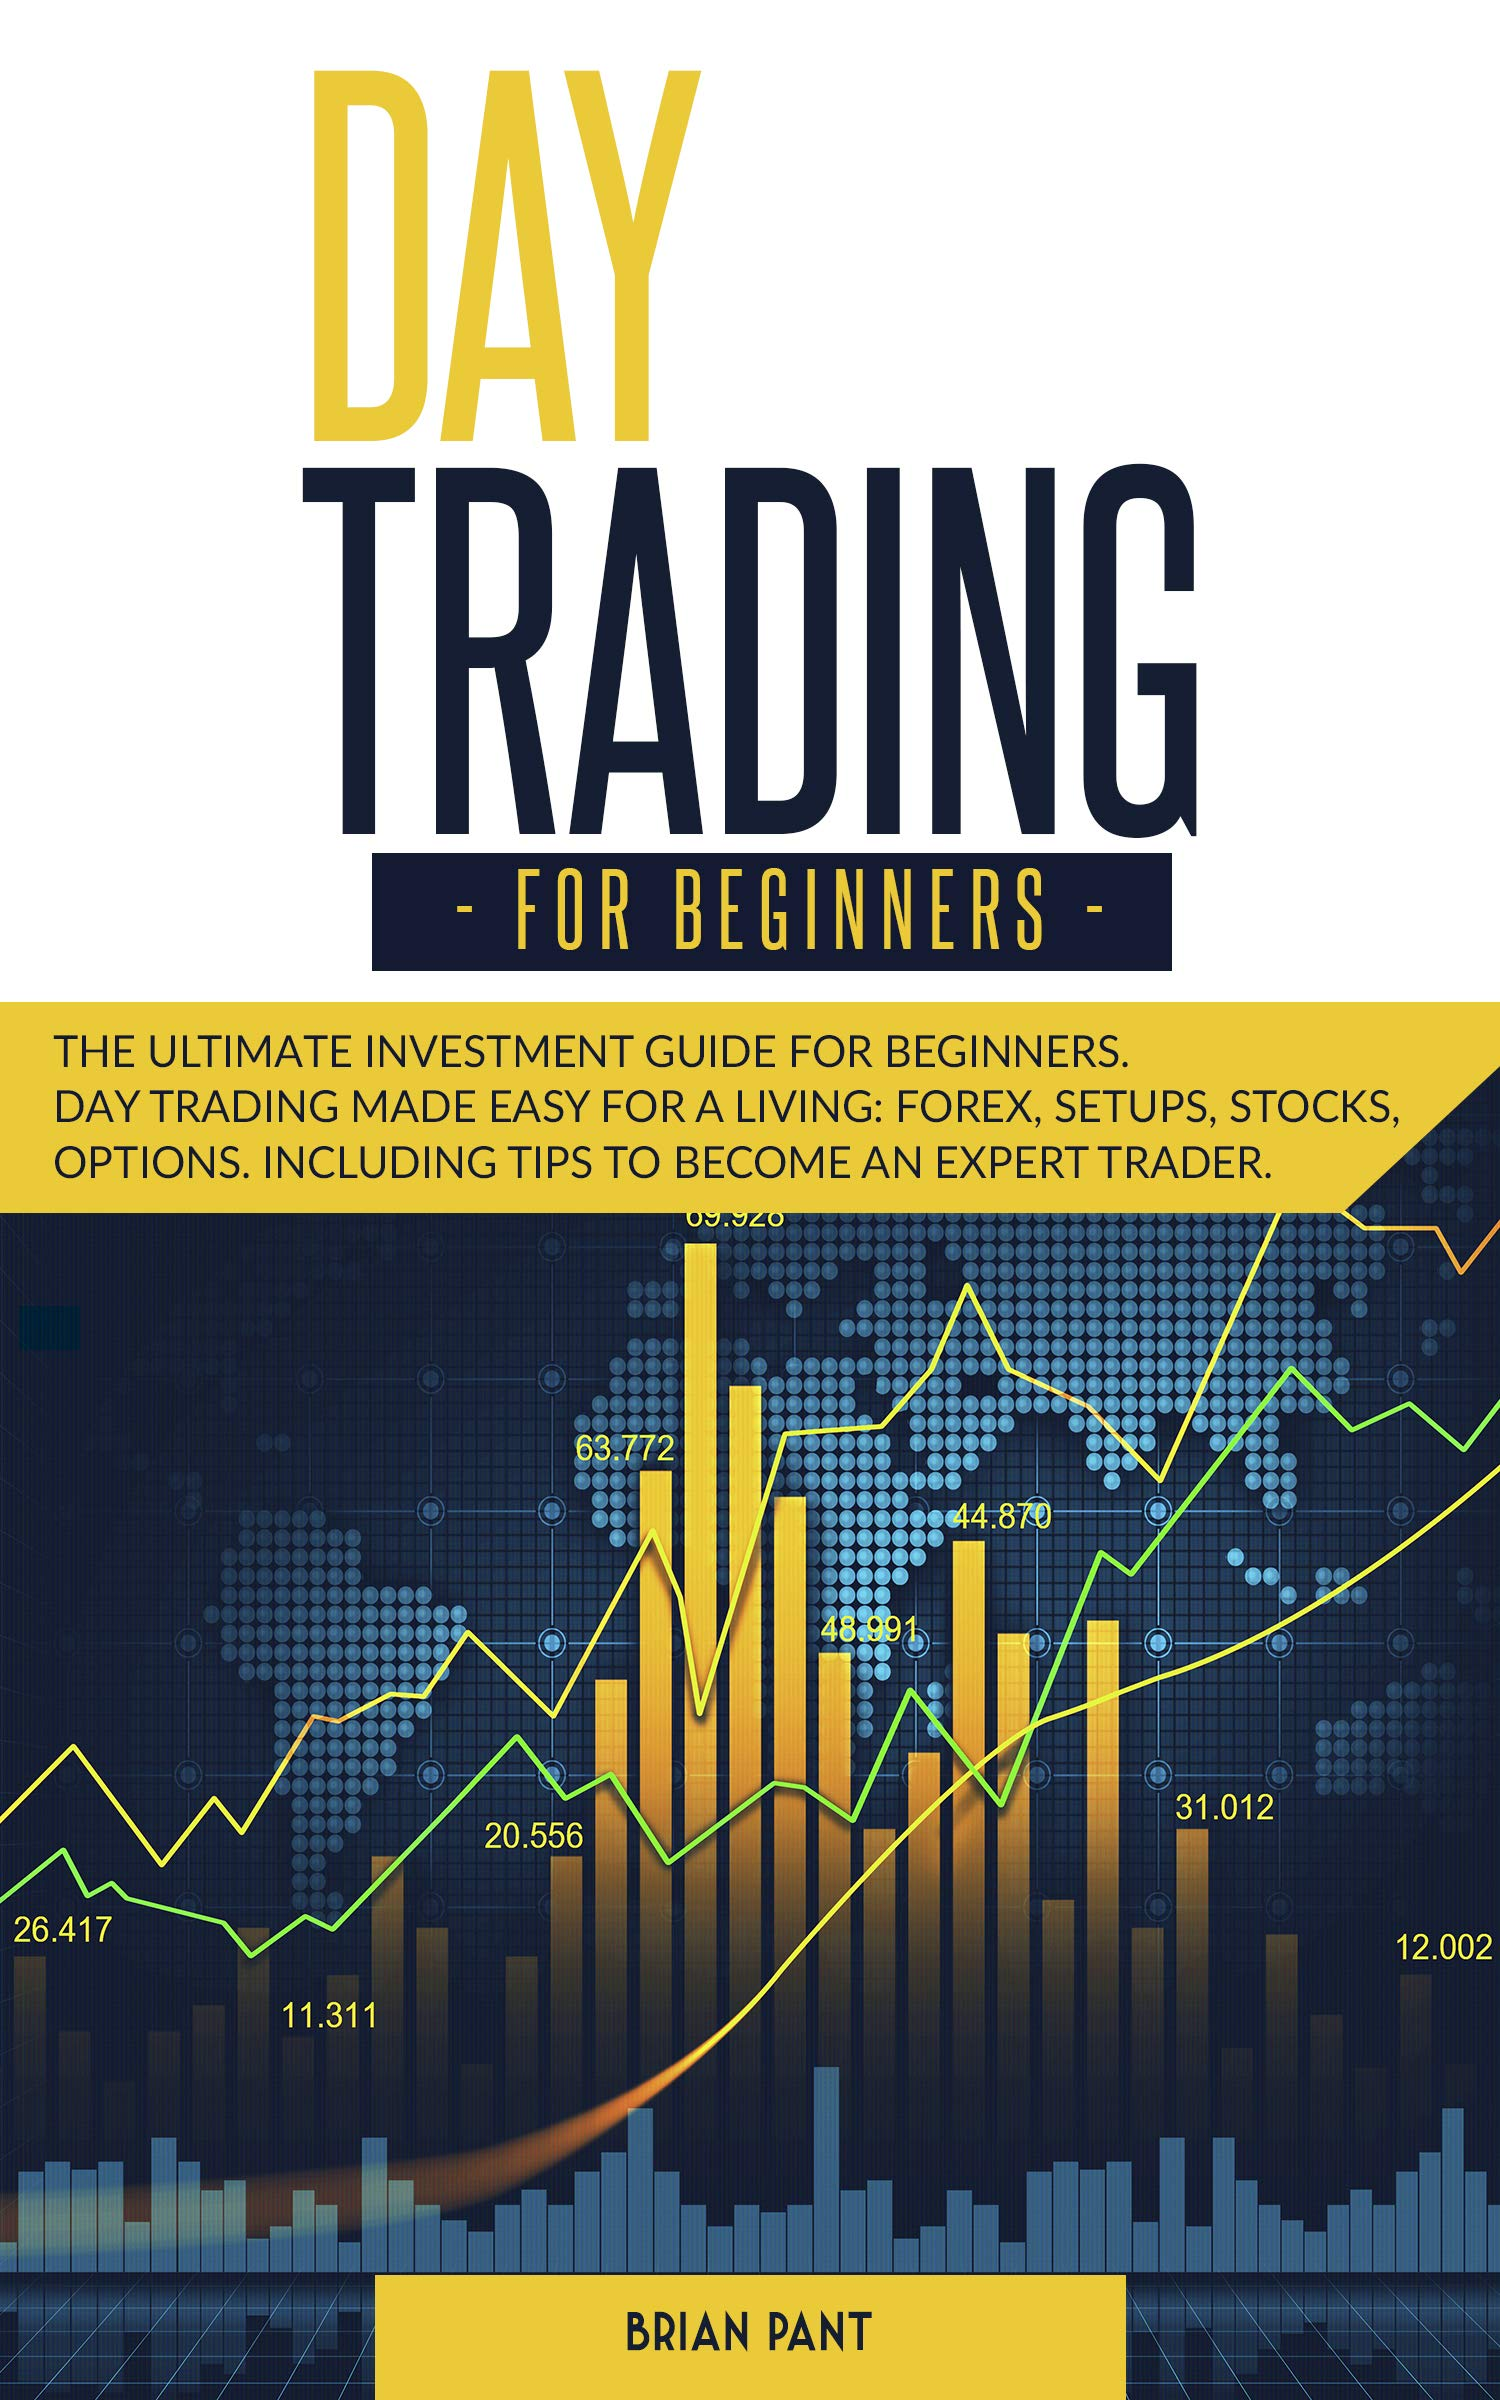 DAY TRADING FOR BEGINNERS : The ultimate investment guide for beginners. Day trading made easy for a living: forex, setups, stocks, options. Including tips to become an expert trader.